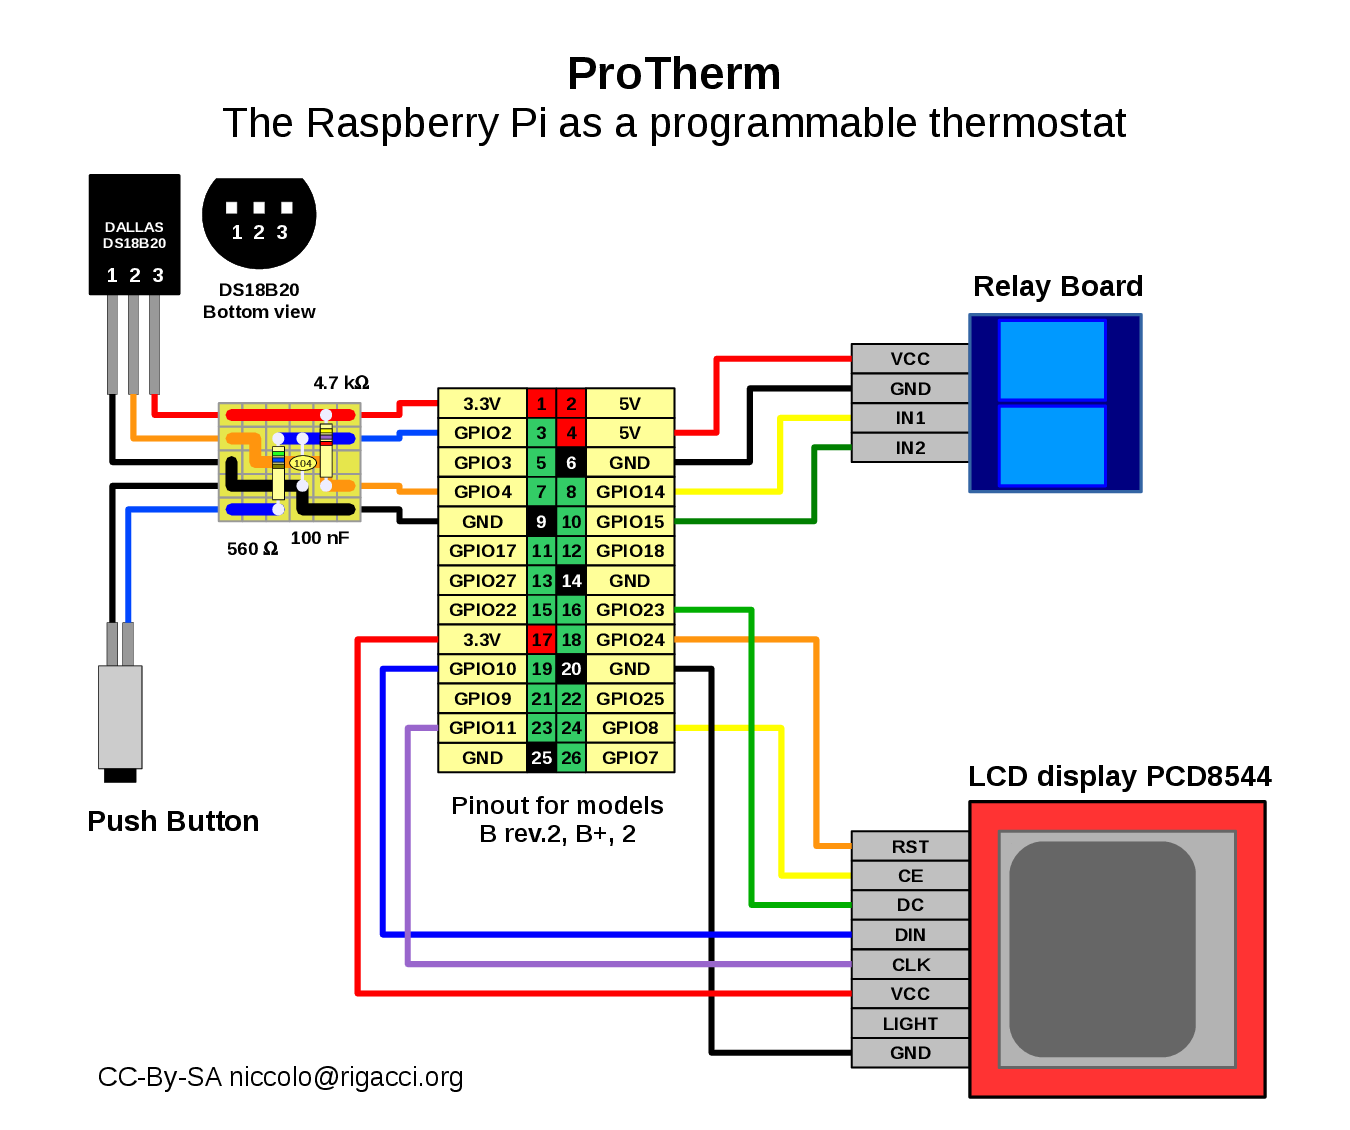 programmable thermostat the raspberry pi rigacci org protherm wiring diagram